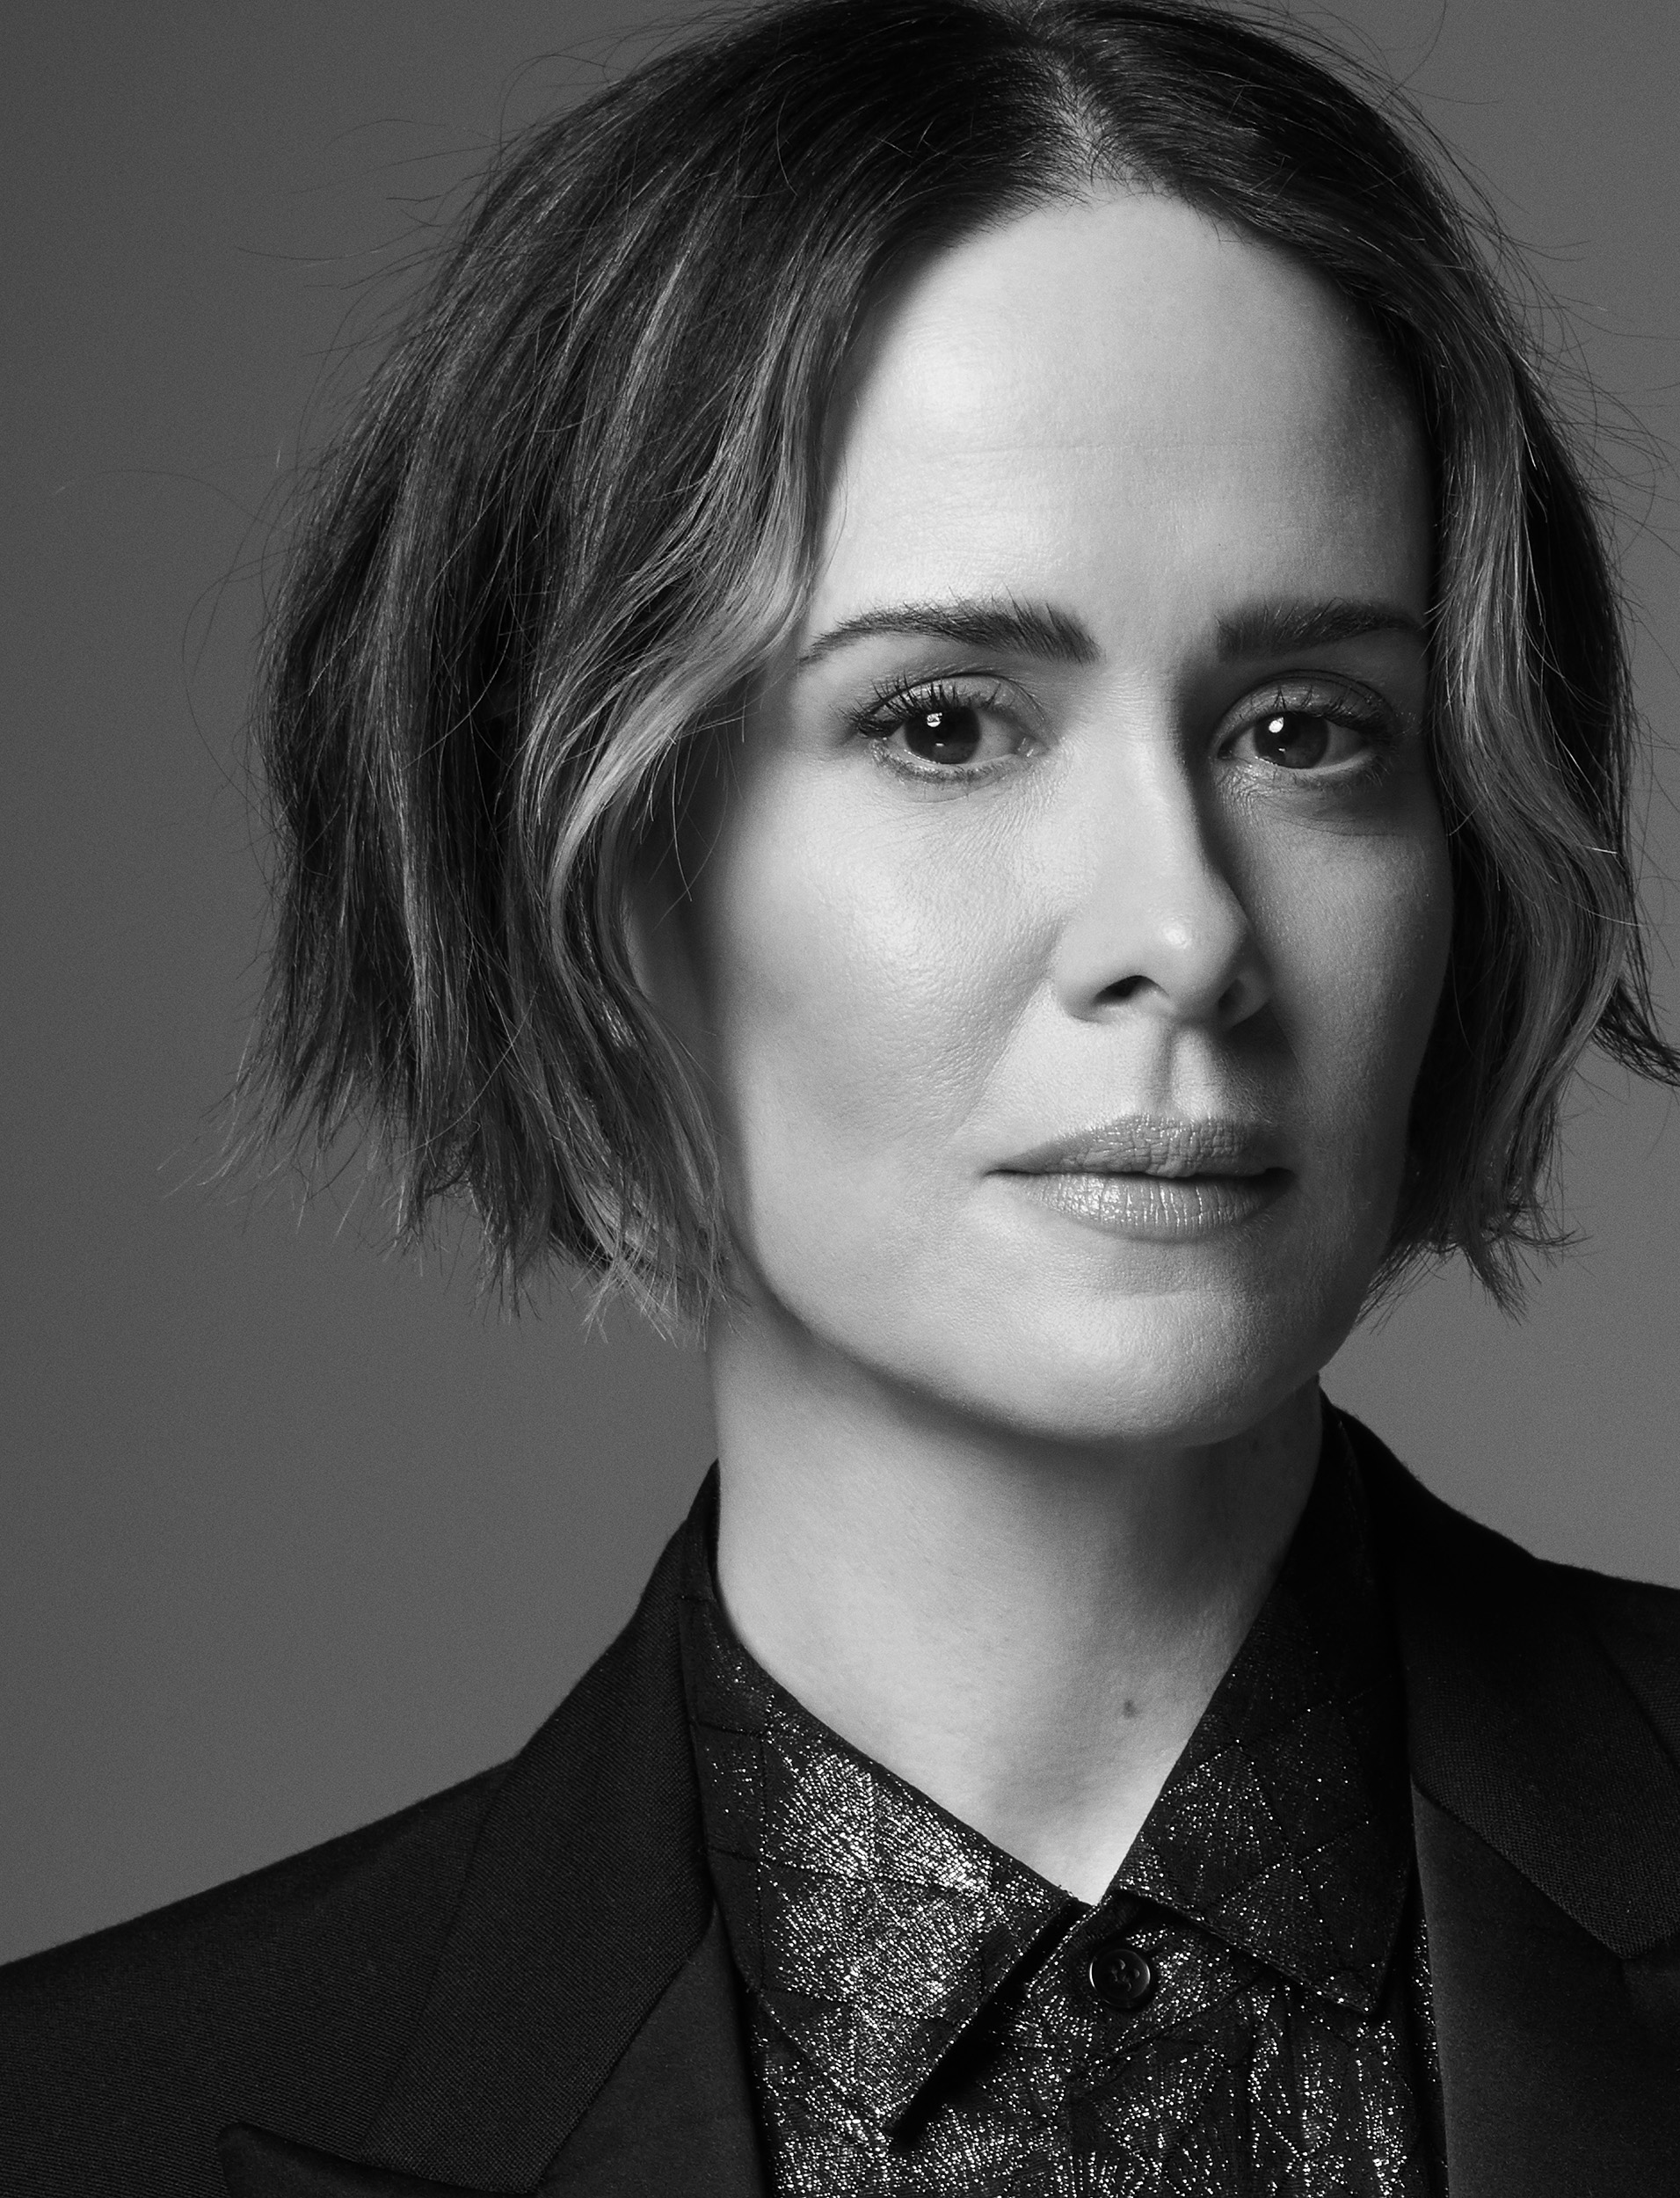 Sarah-Paulson-by-Robert-Ascroft-02